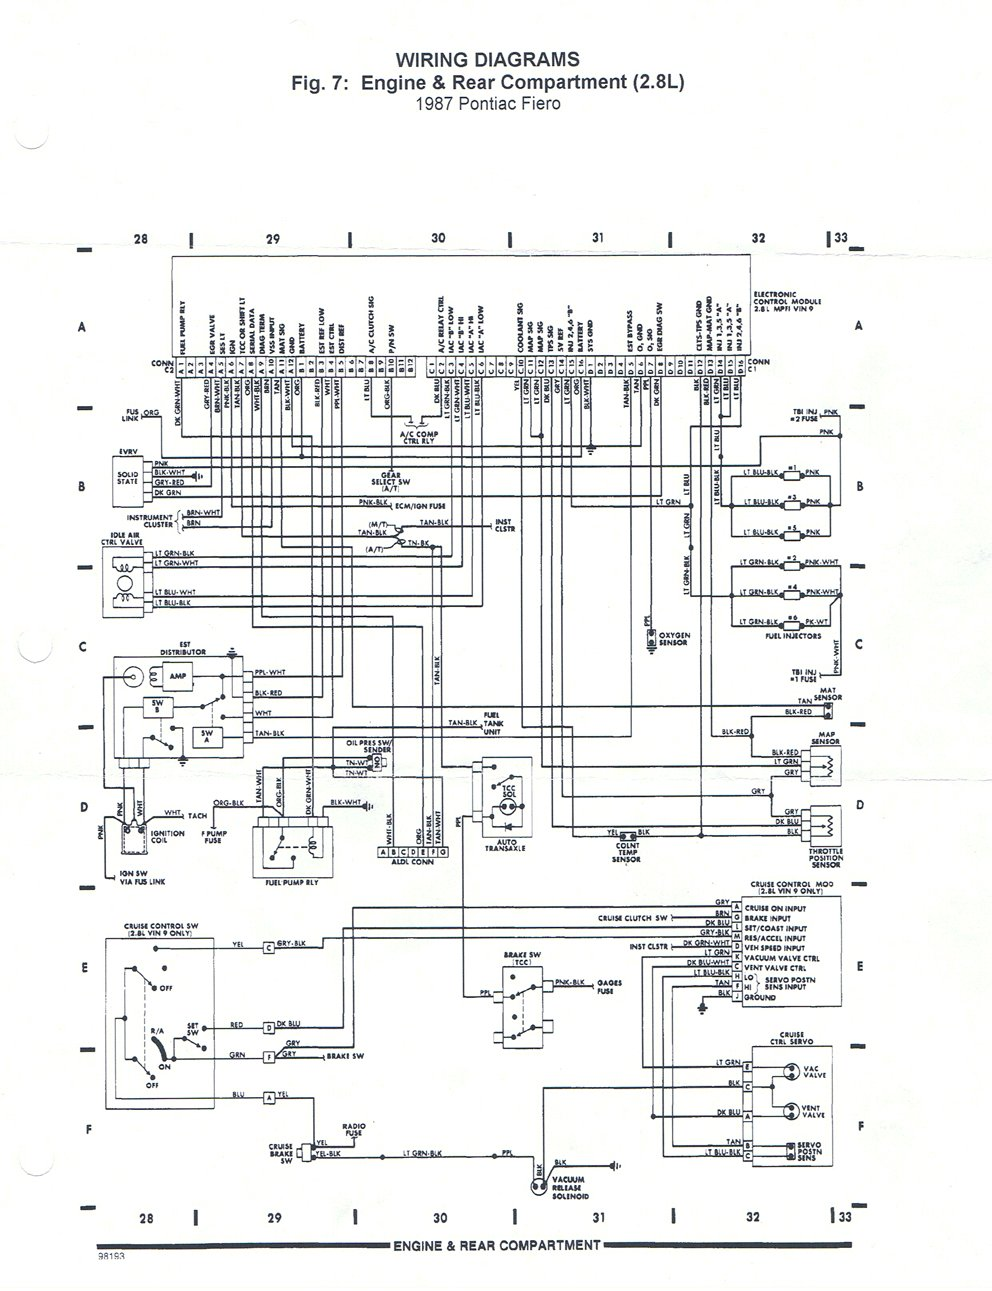 2007 Grand Prix Engine Diagram Wiring Library Pontiac 1986 Fiero Schematics Diagrams U2022 Rh Seniorlivinguniversity Co 1999 Am